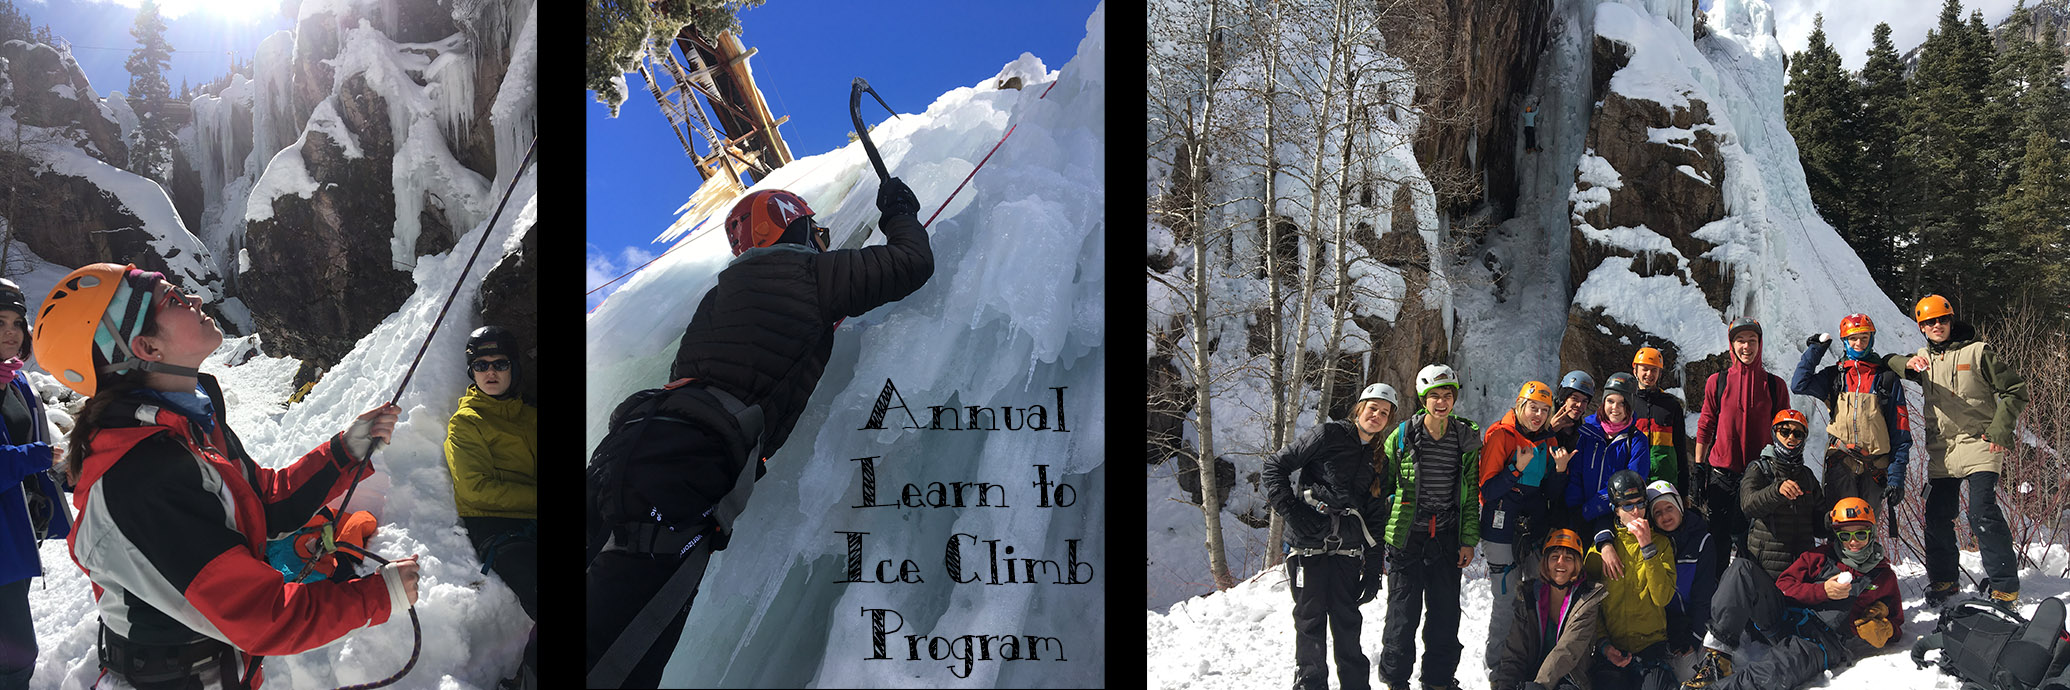 Learn_to_Ice_Climb_2018